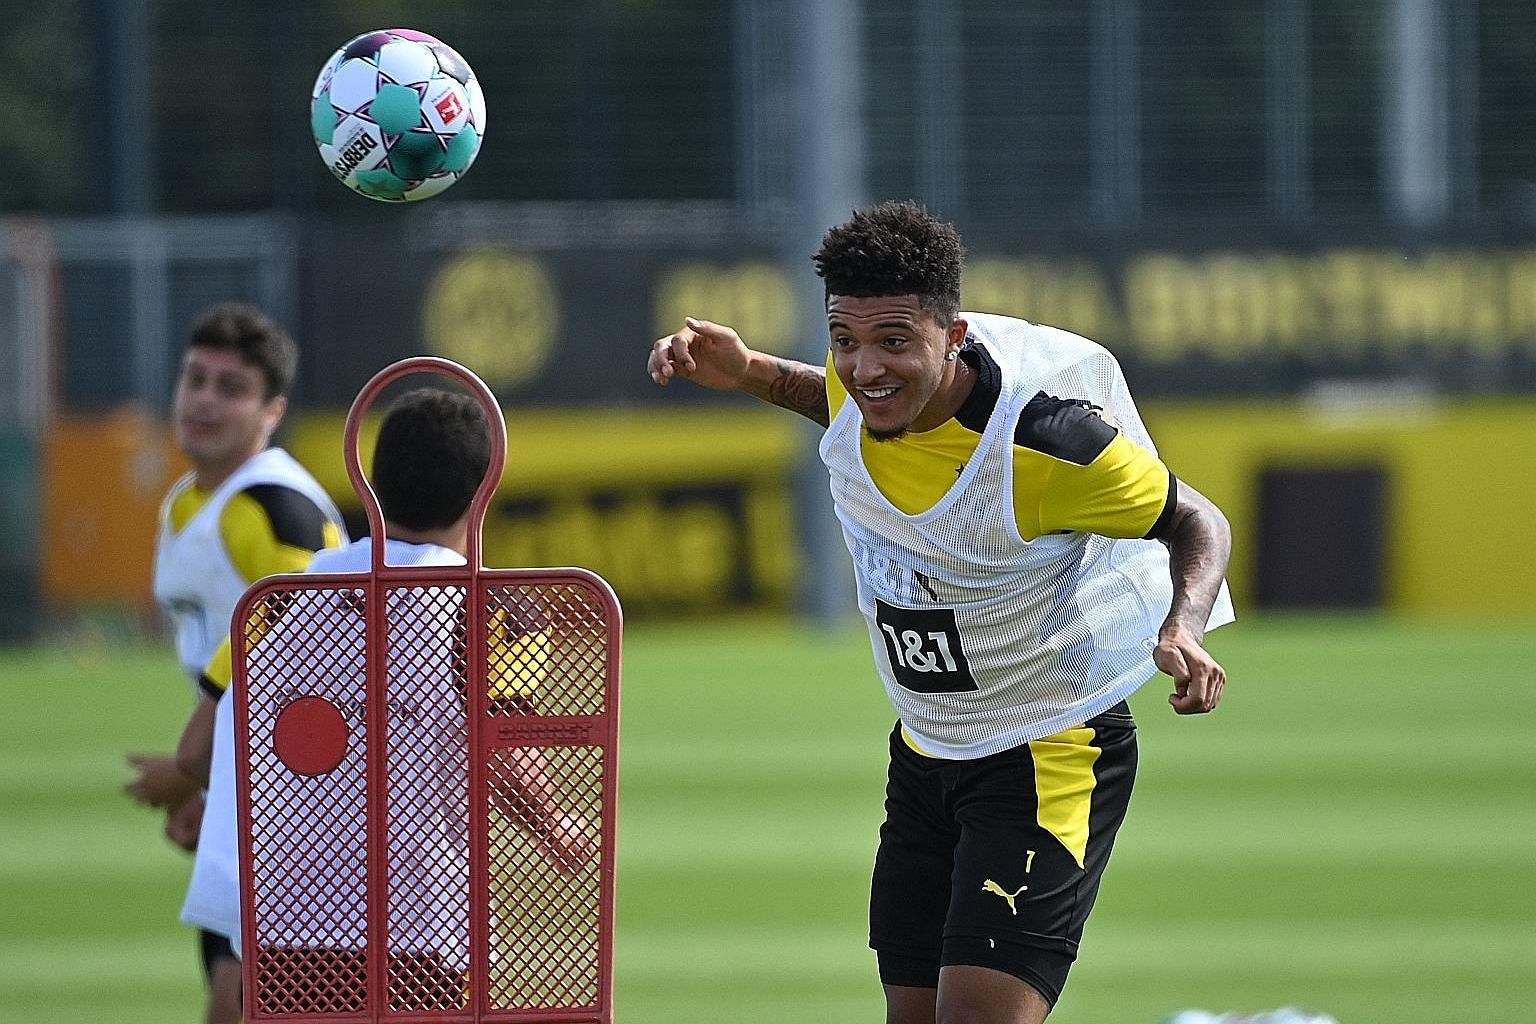 Borussia Dortmund's Jadon Sancho could be making a big money move to Manchester United.